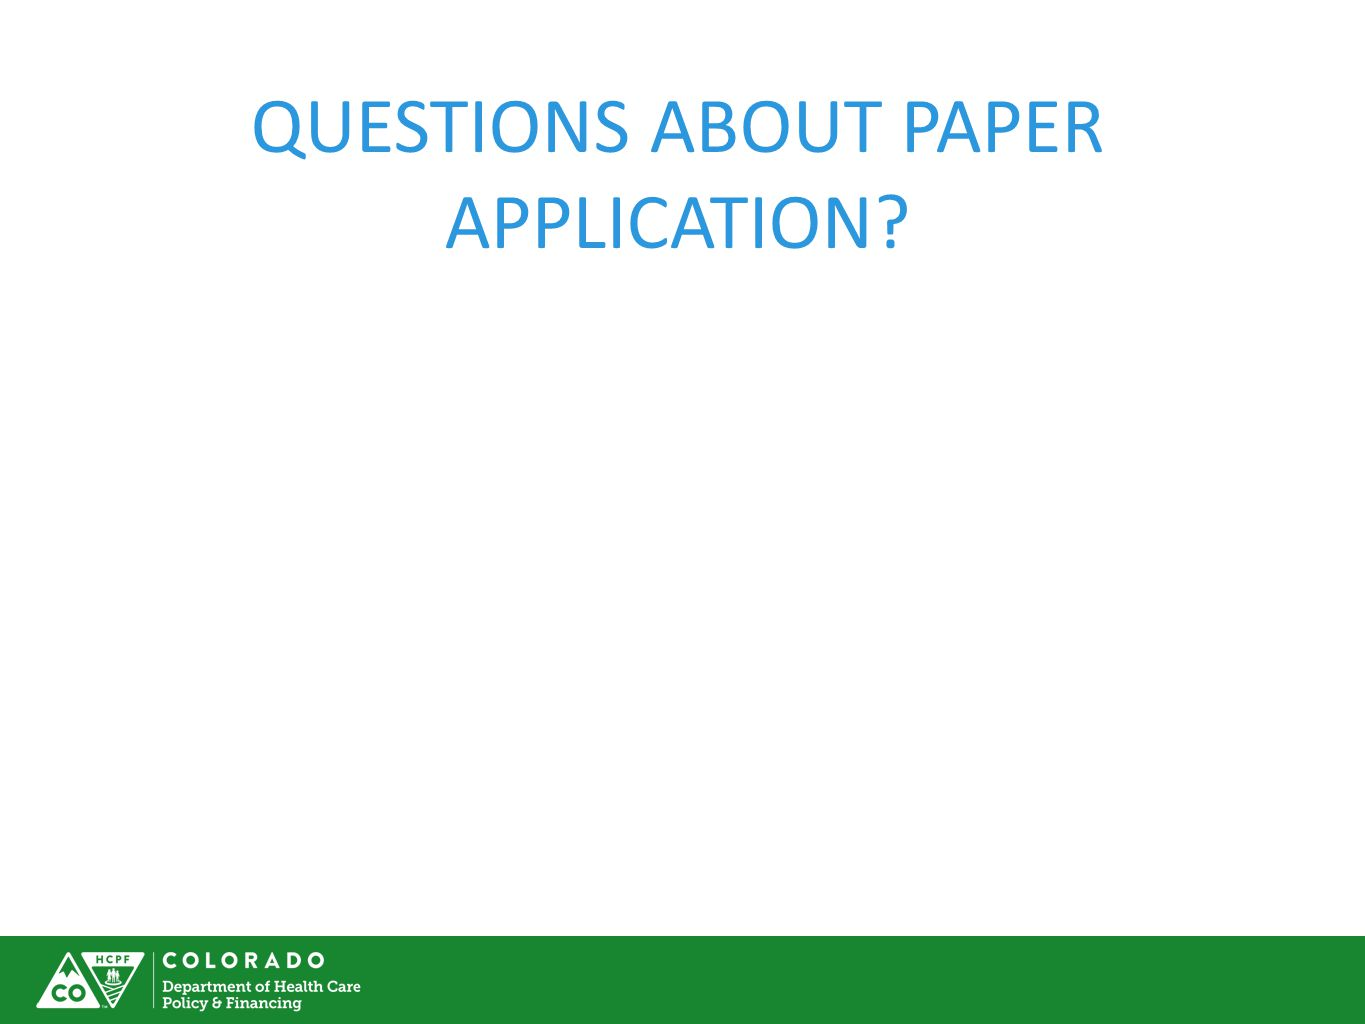 QUESTIONS ABOUT PAPER APPLICATION